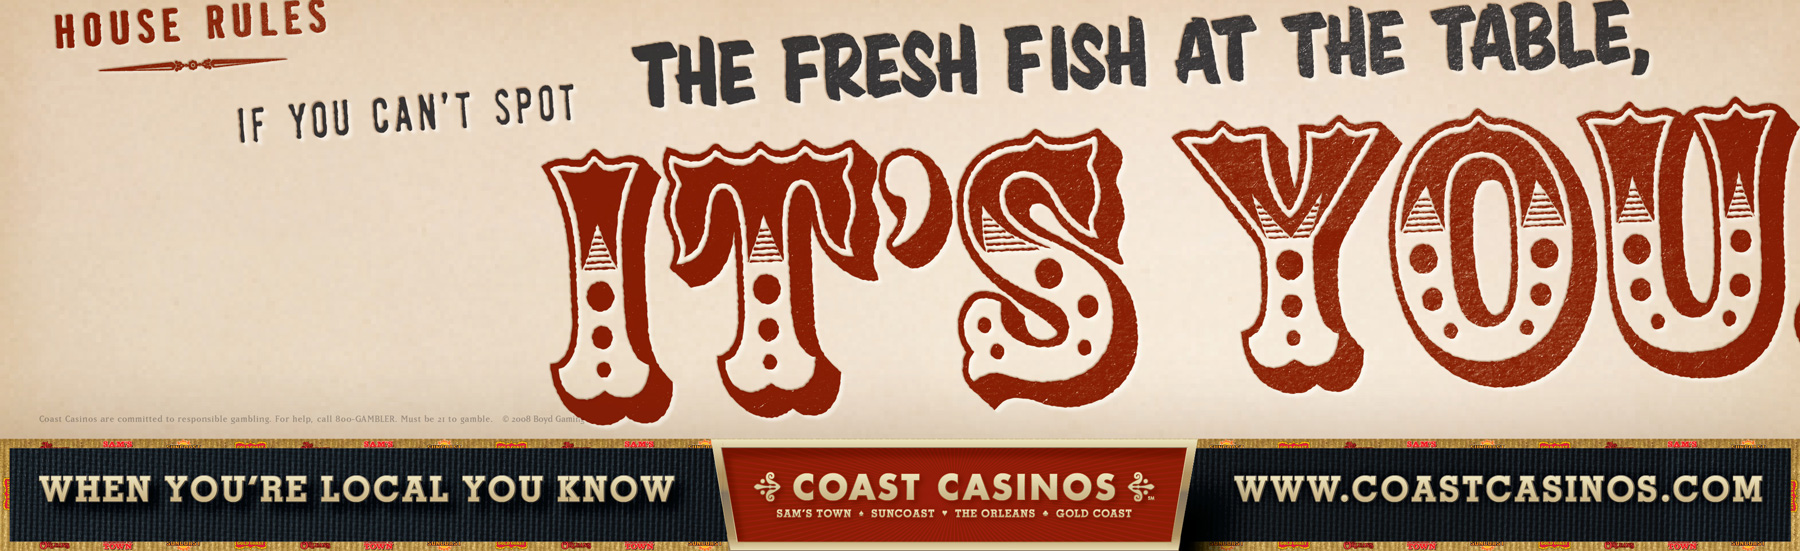 Coast Casinos marketing strategy campaign billboard - Mortar Advertising Agency San Francisco